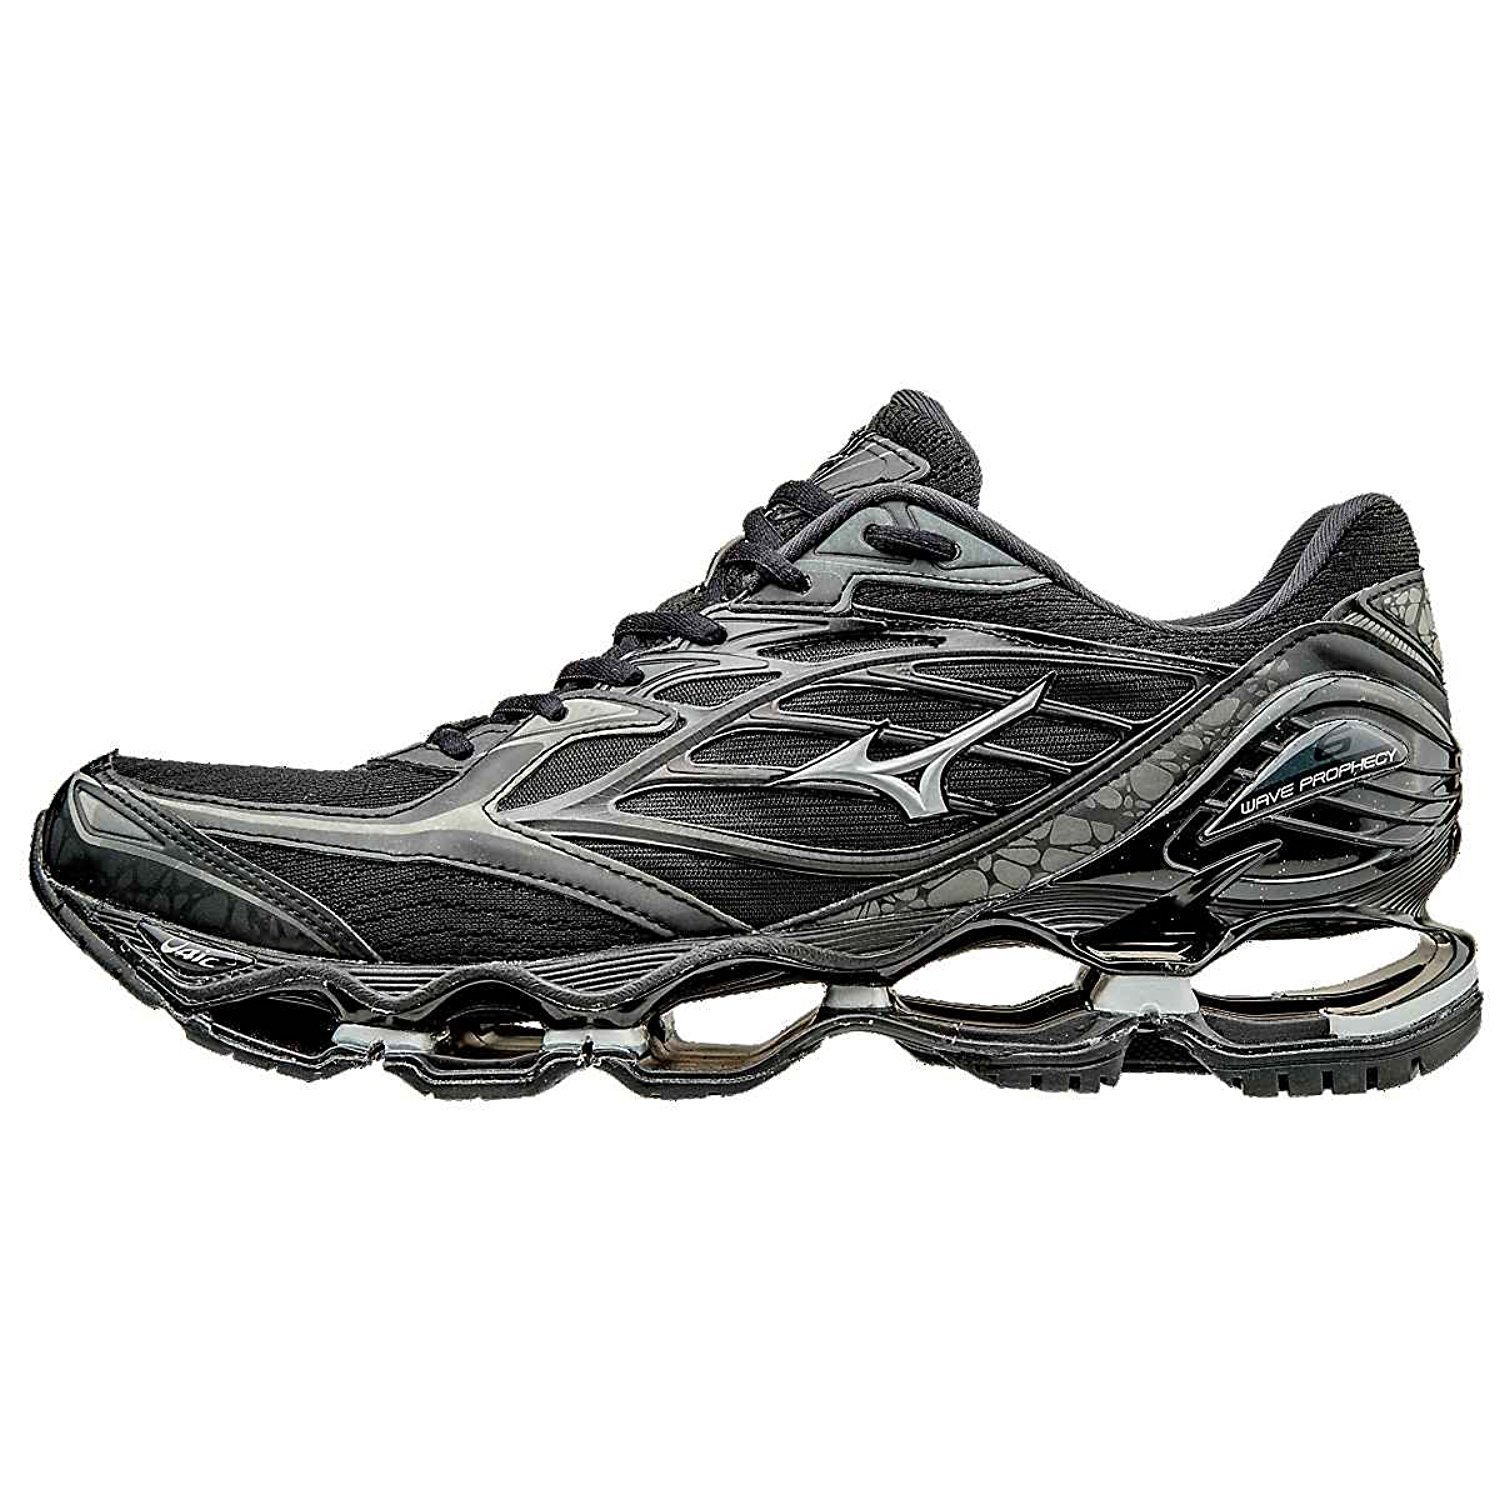 Mizuno Men S Wave Has A Running Shoe